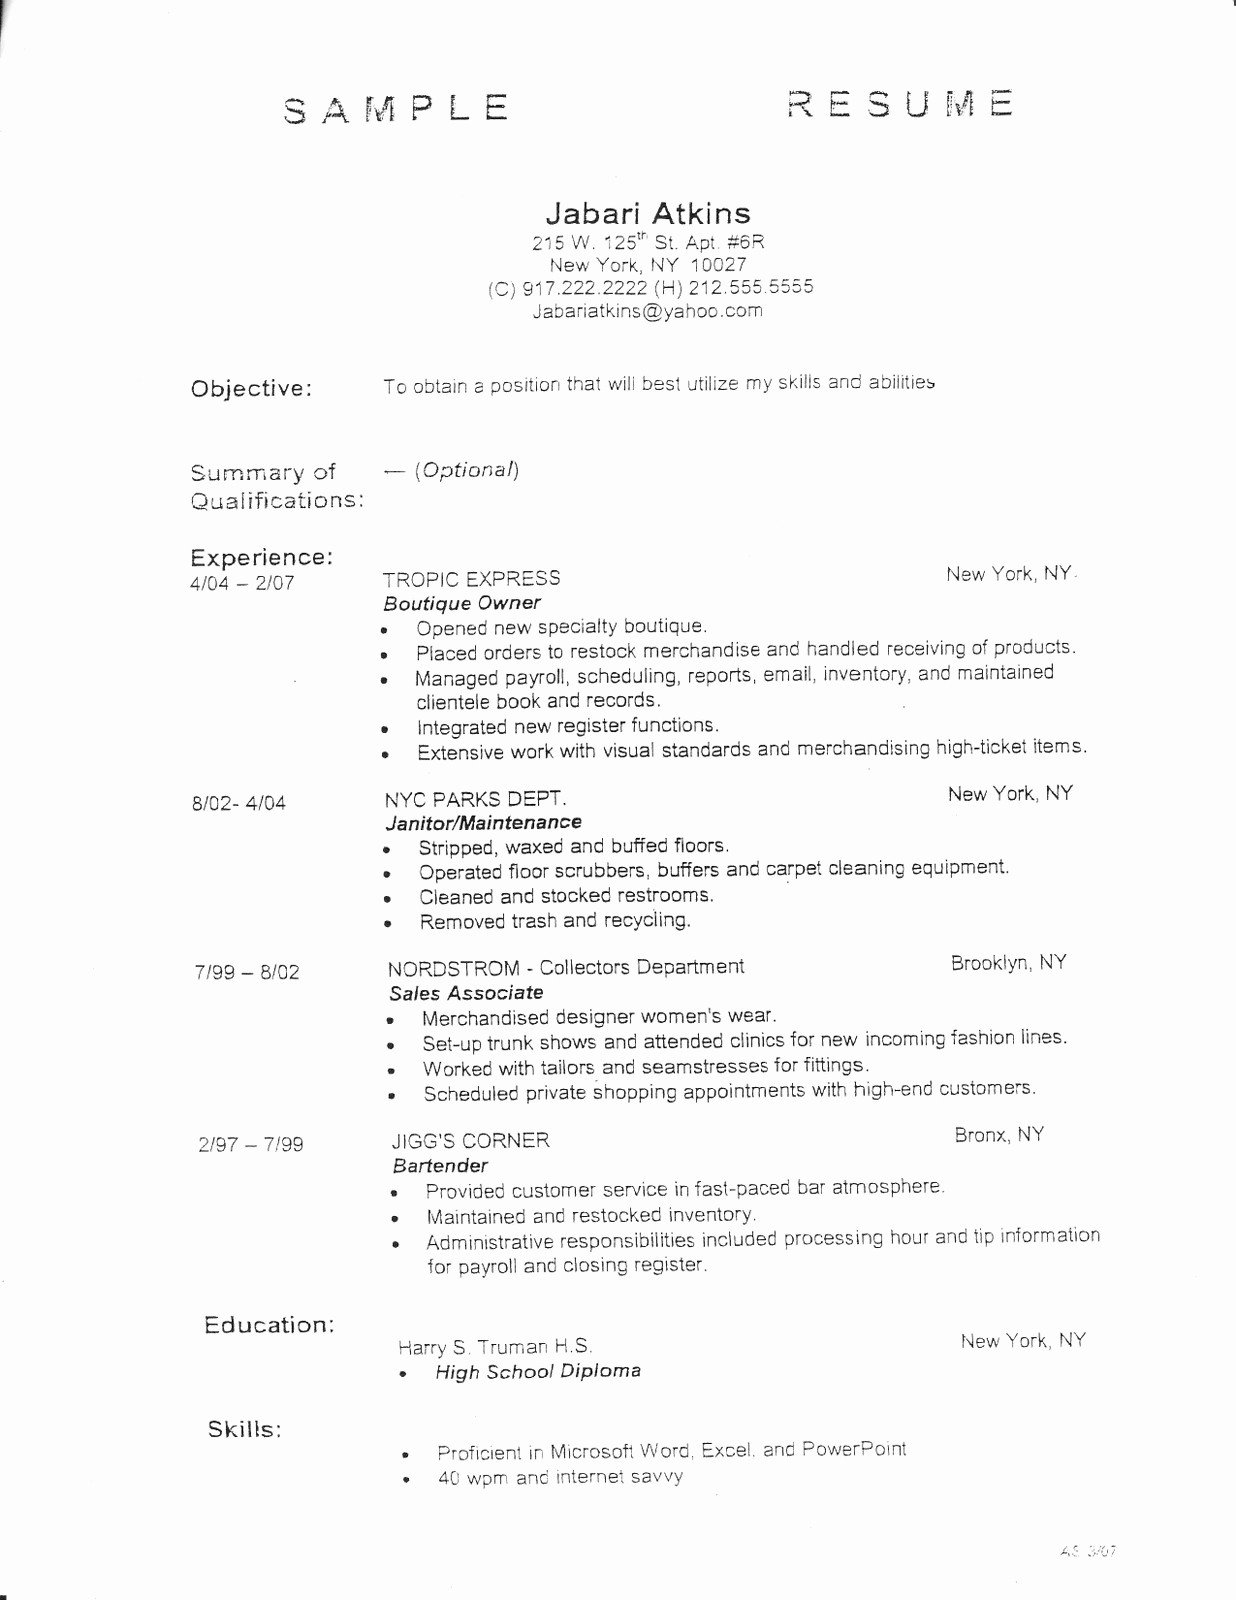 Samples Of A Basic Resume Fresh Sample Resume Outlines Search Results